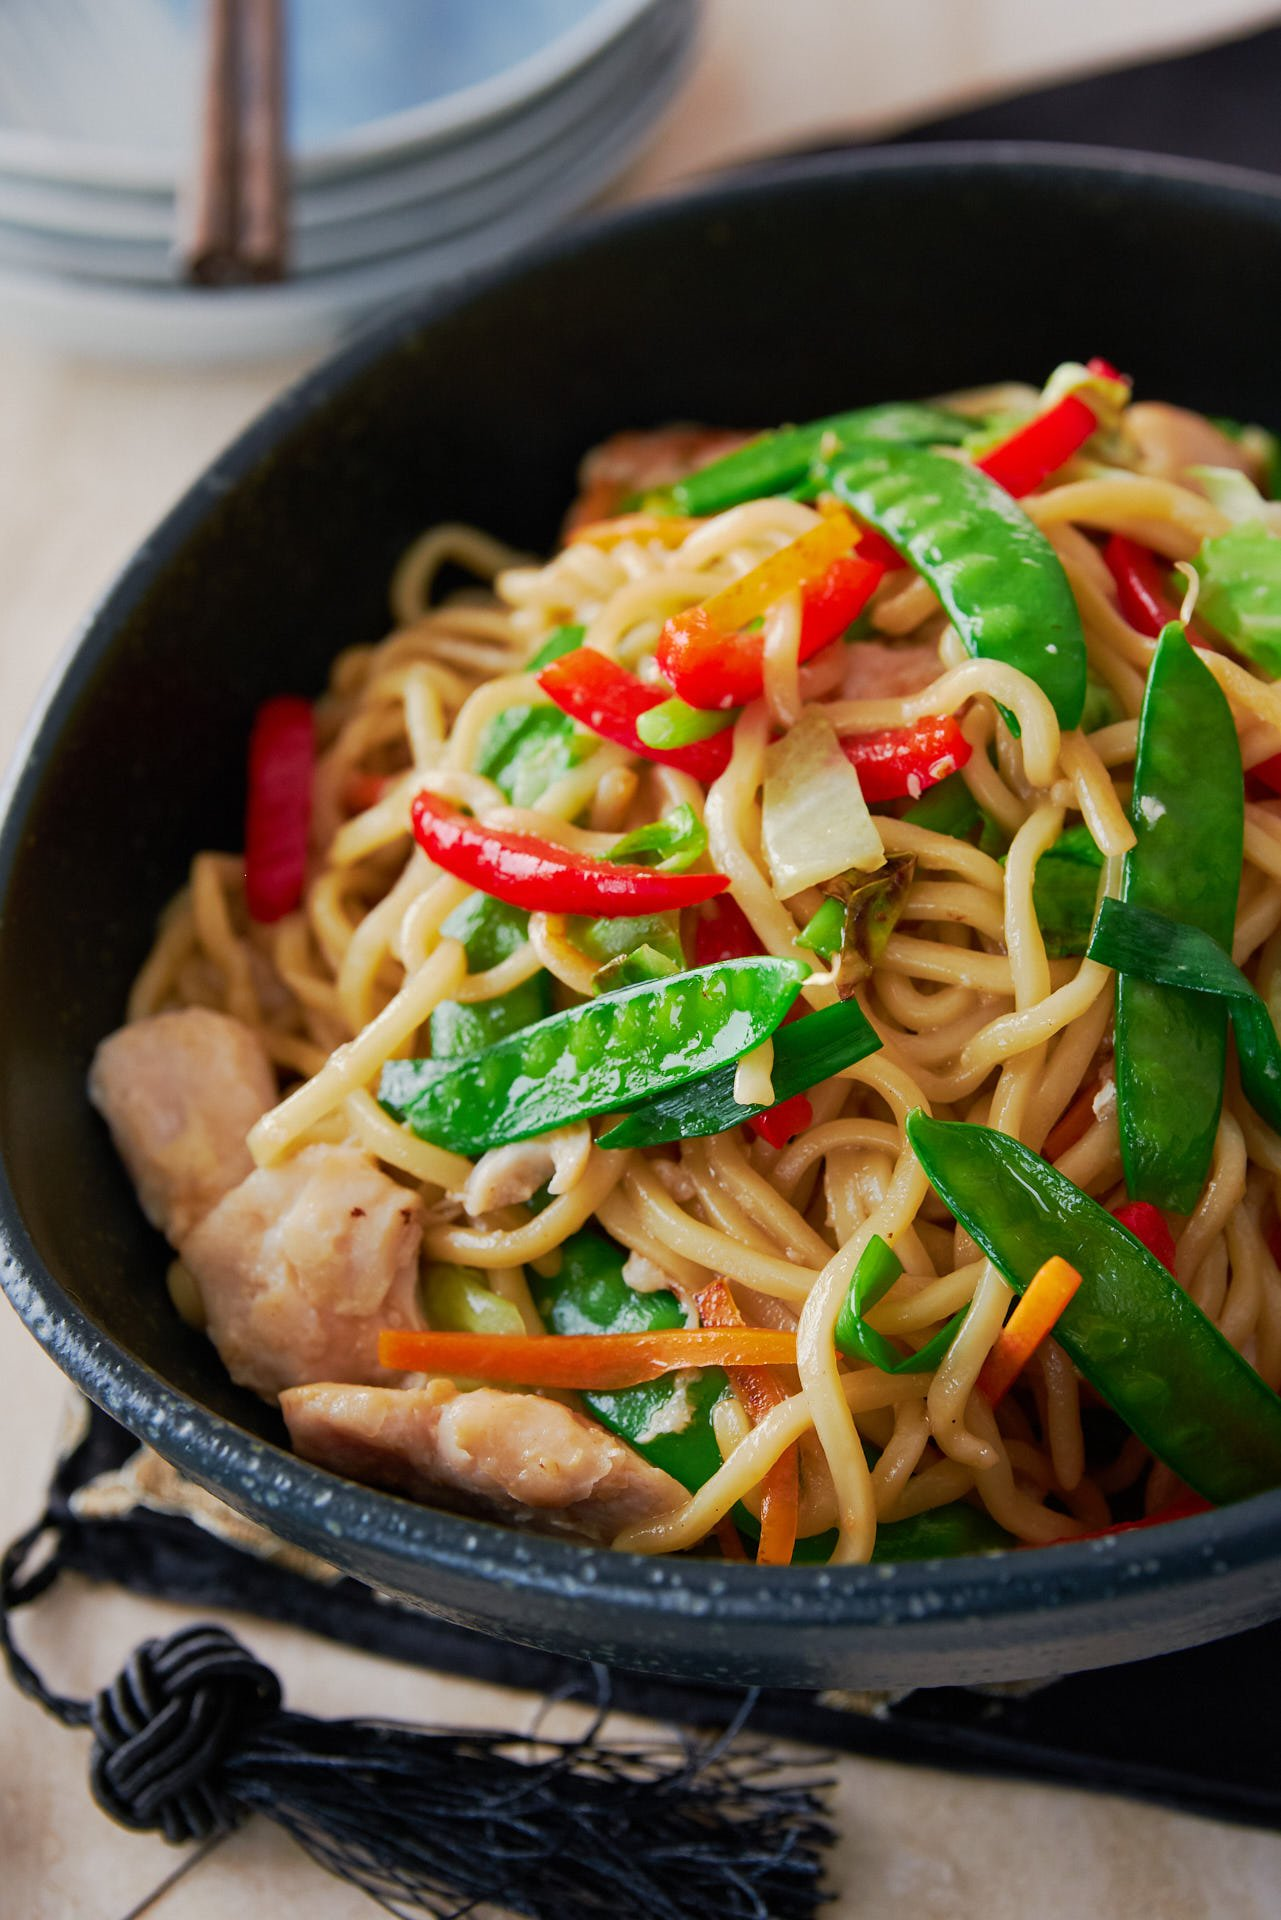 Best Chicken Chow Mein Recipe (炒面)